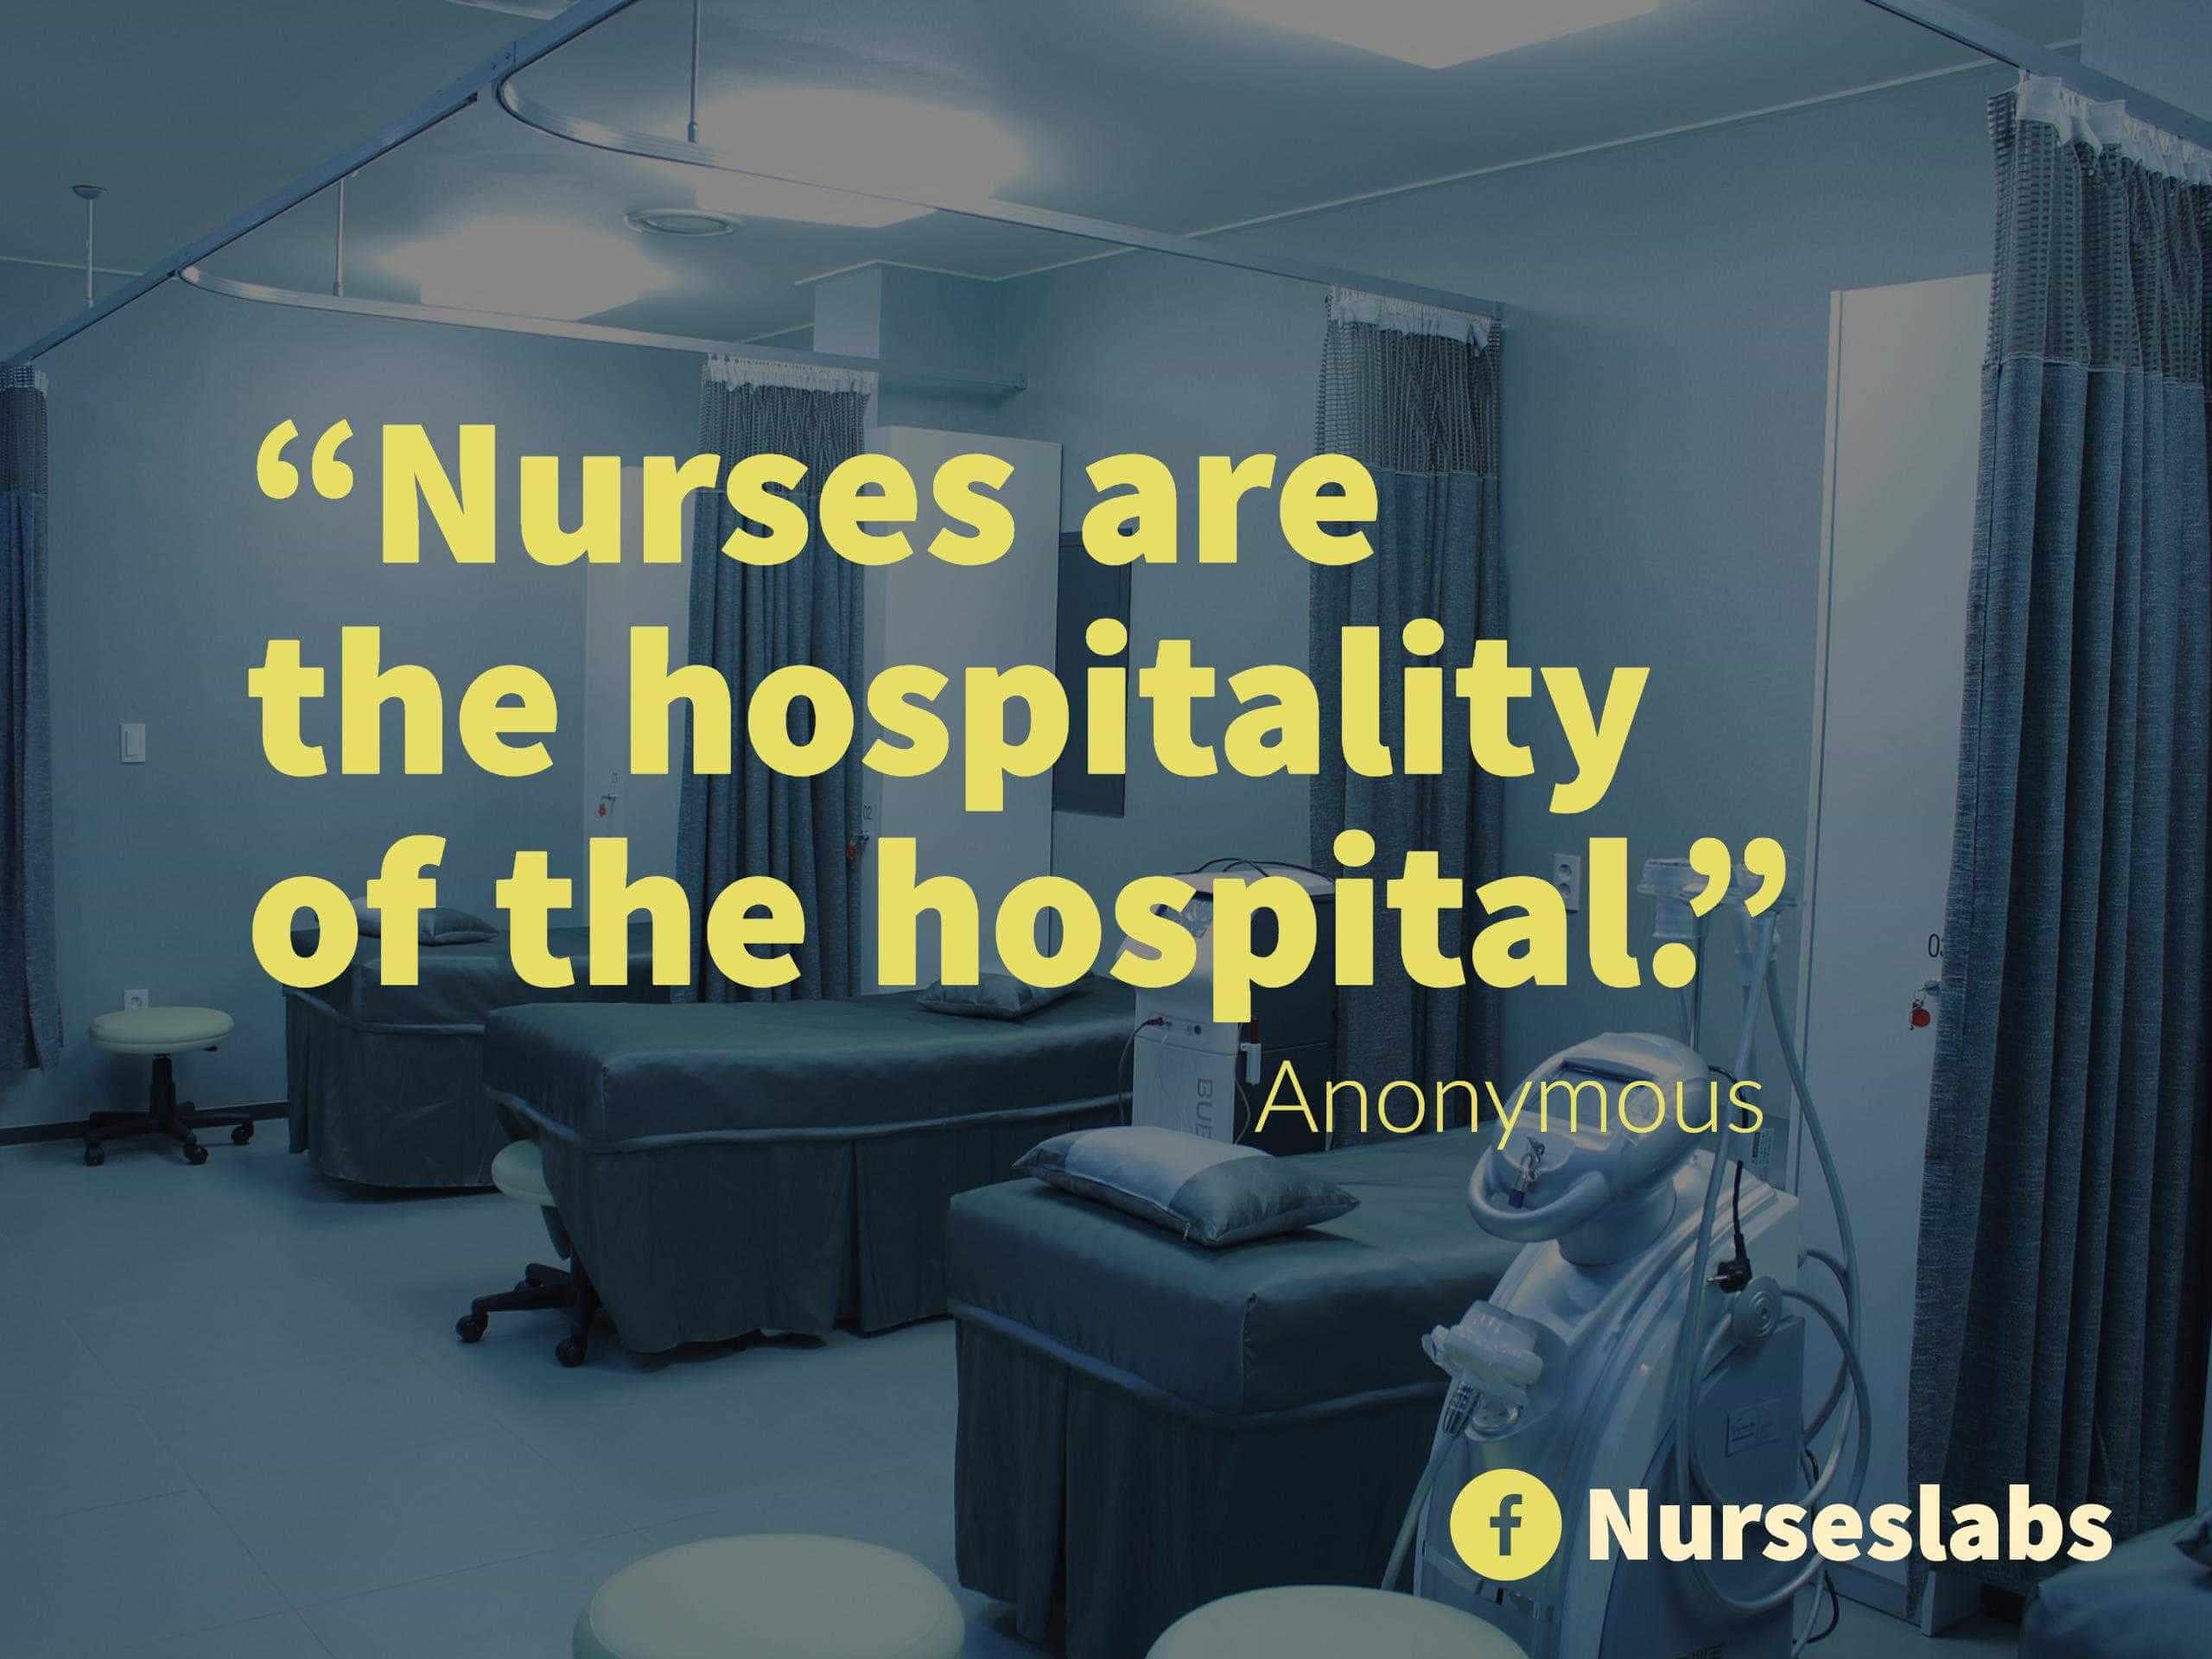 """Nurses are the hospitality of the hospital."" - Anonymous"